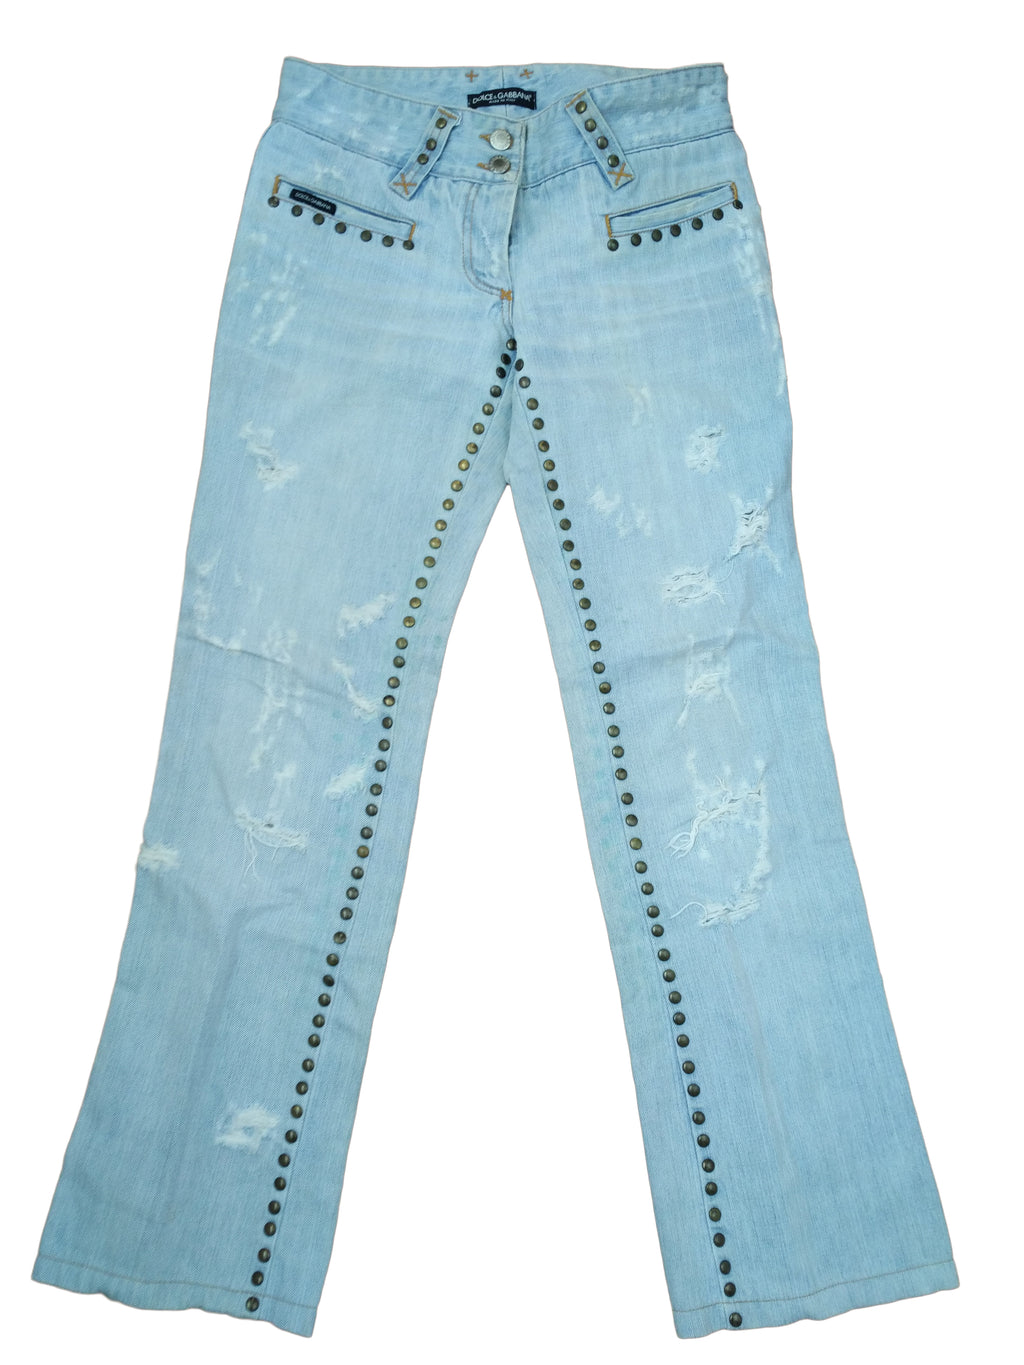 D&G Jeans with Applique Size 38 (EU)